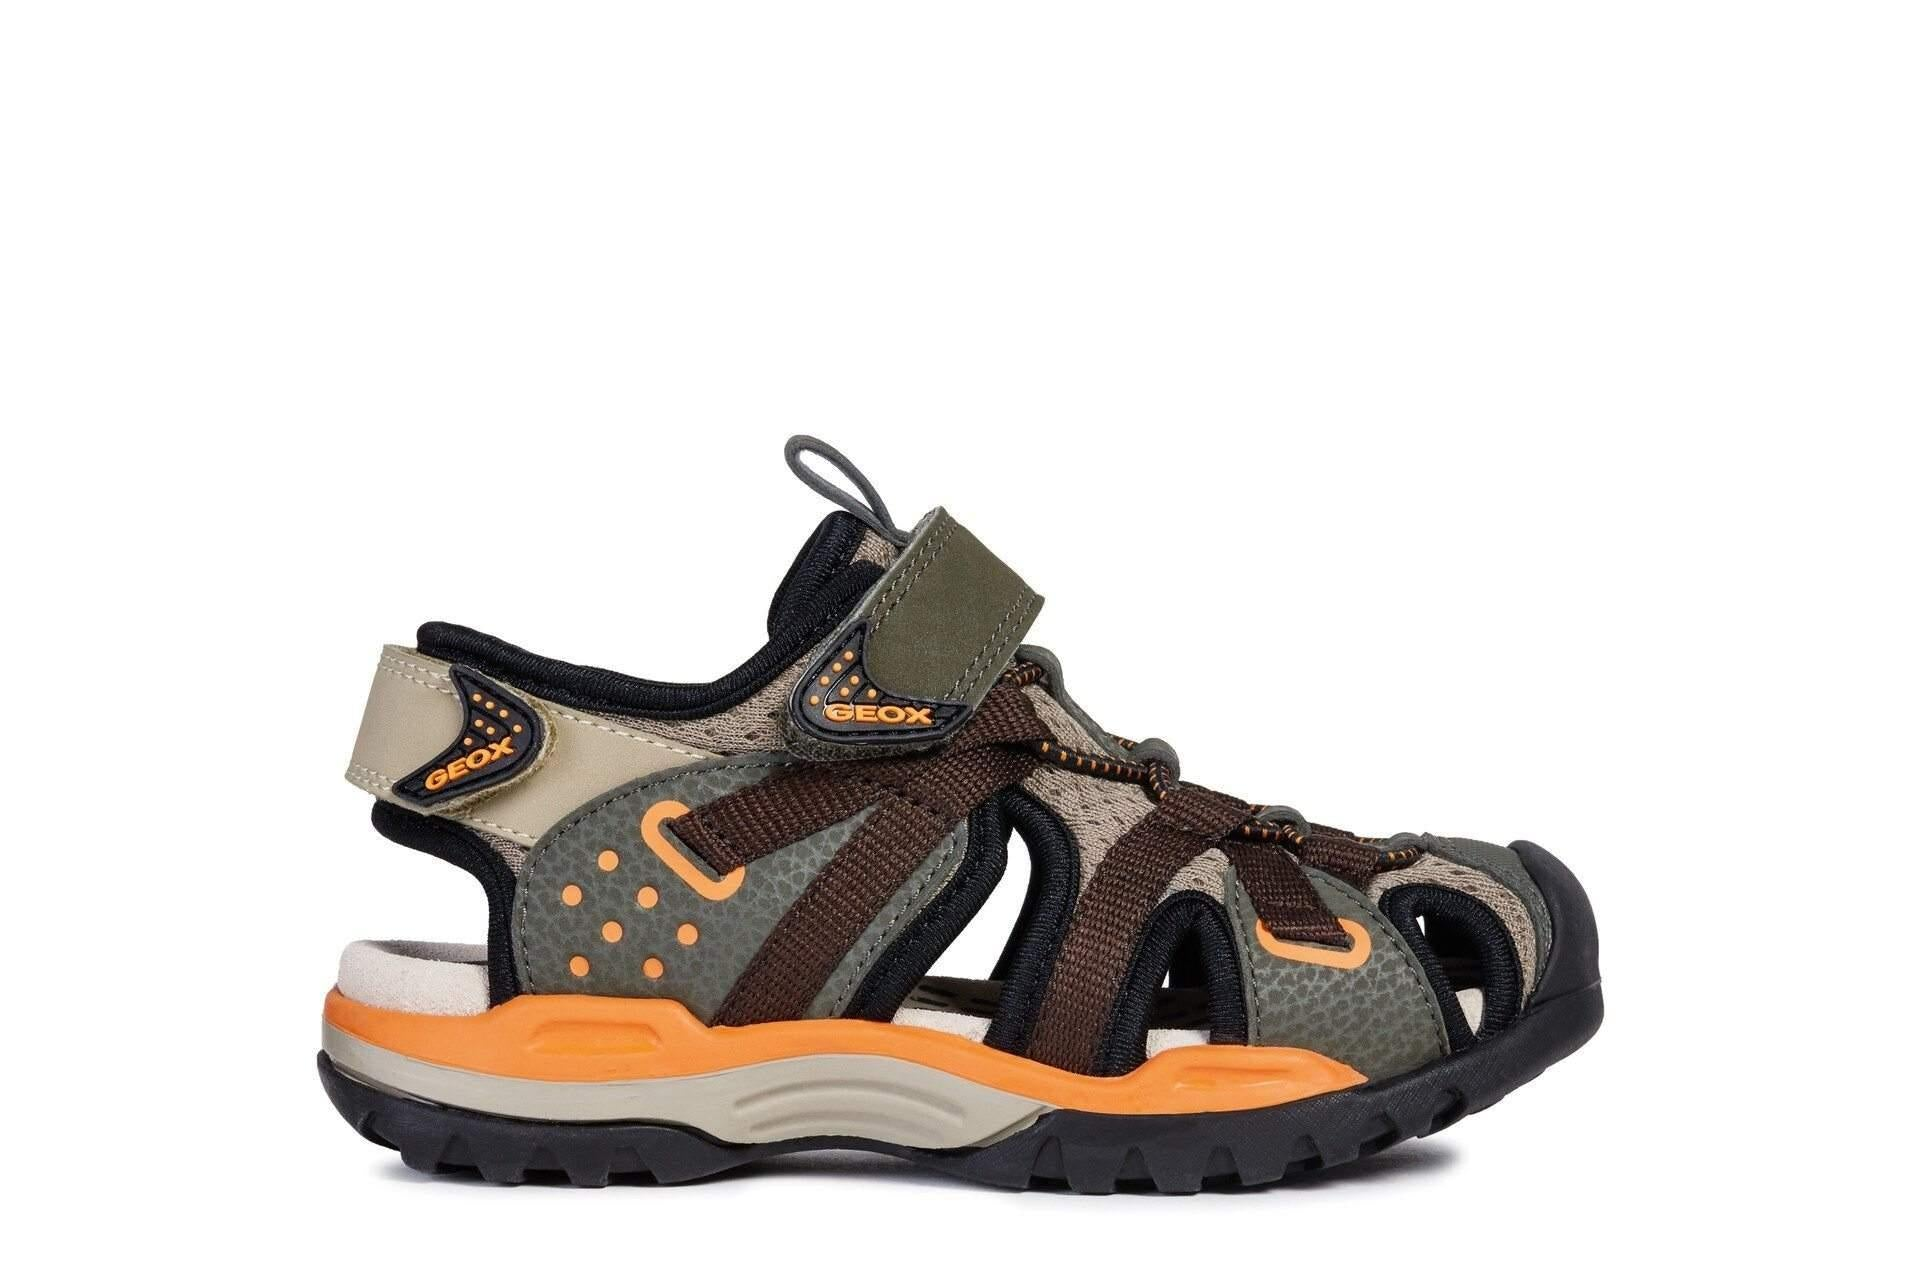 Geox BOREALIS Boys Water Friendly Sandals / Little Kids / Youth - shoekid.ca